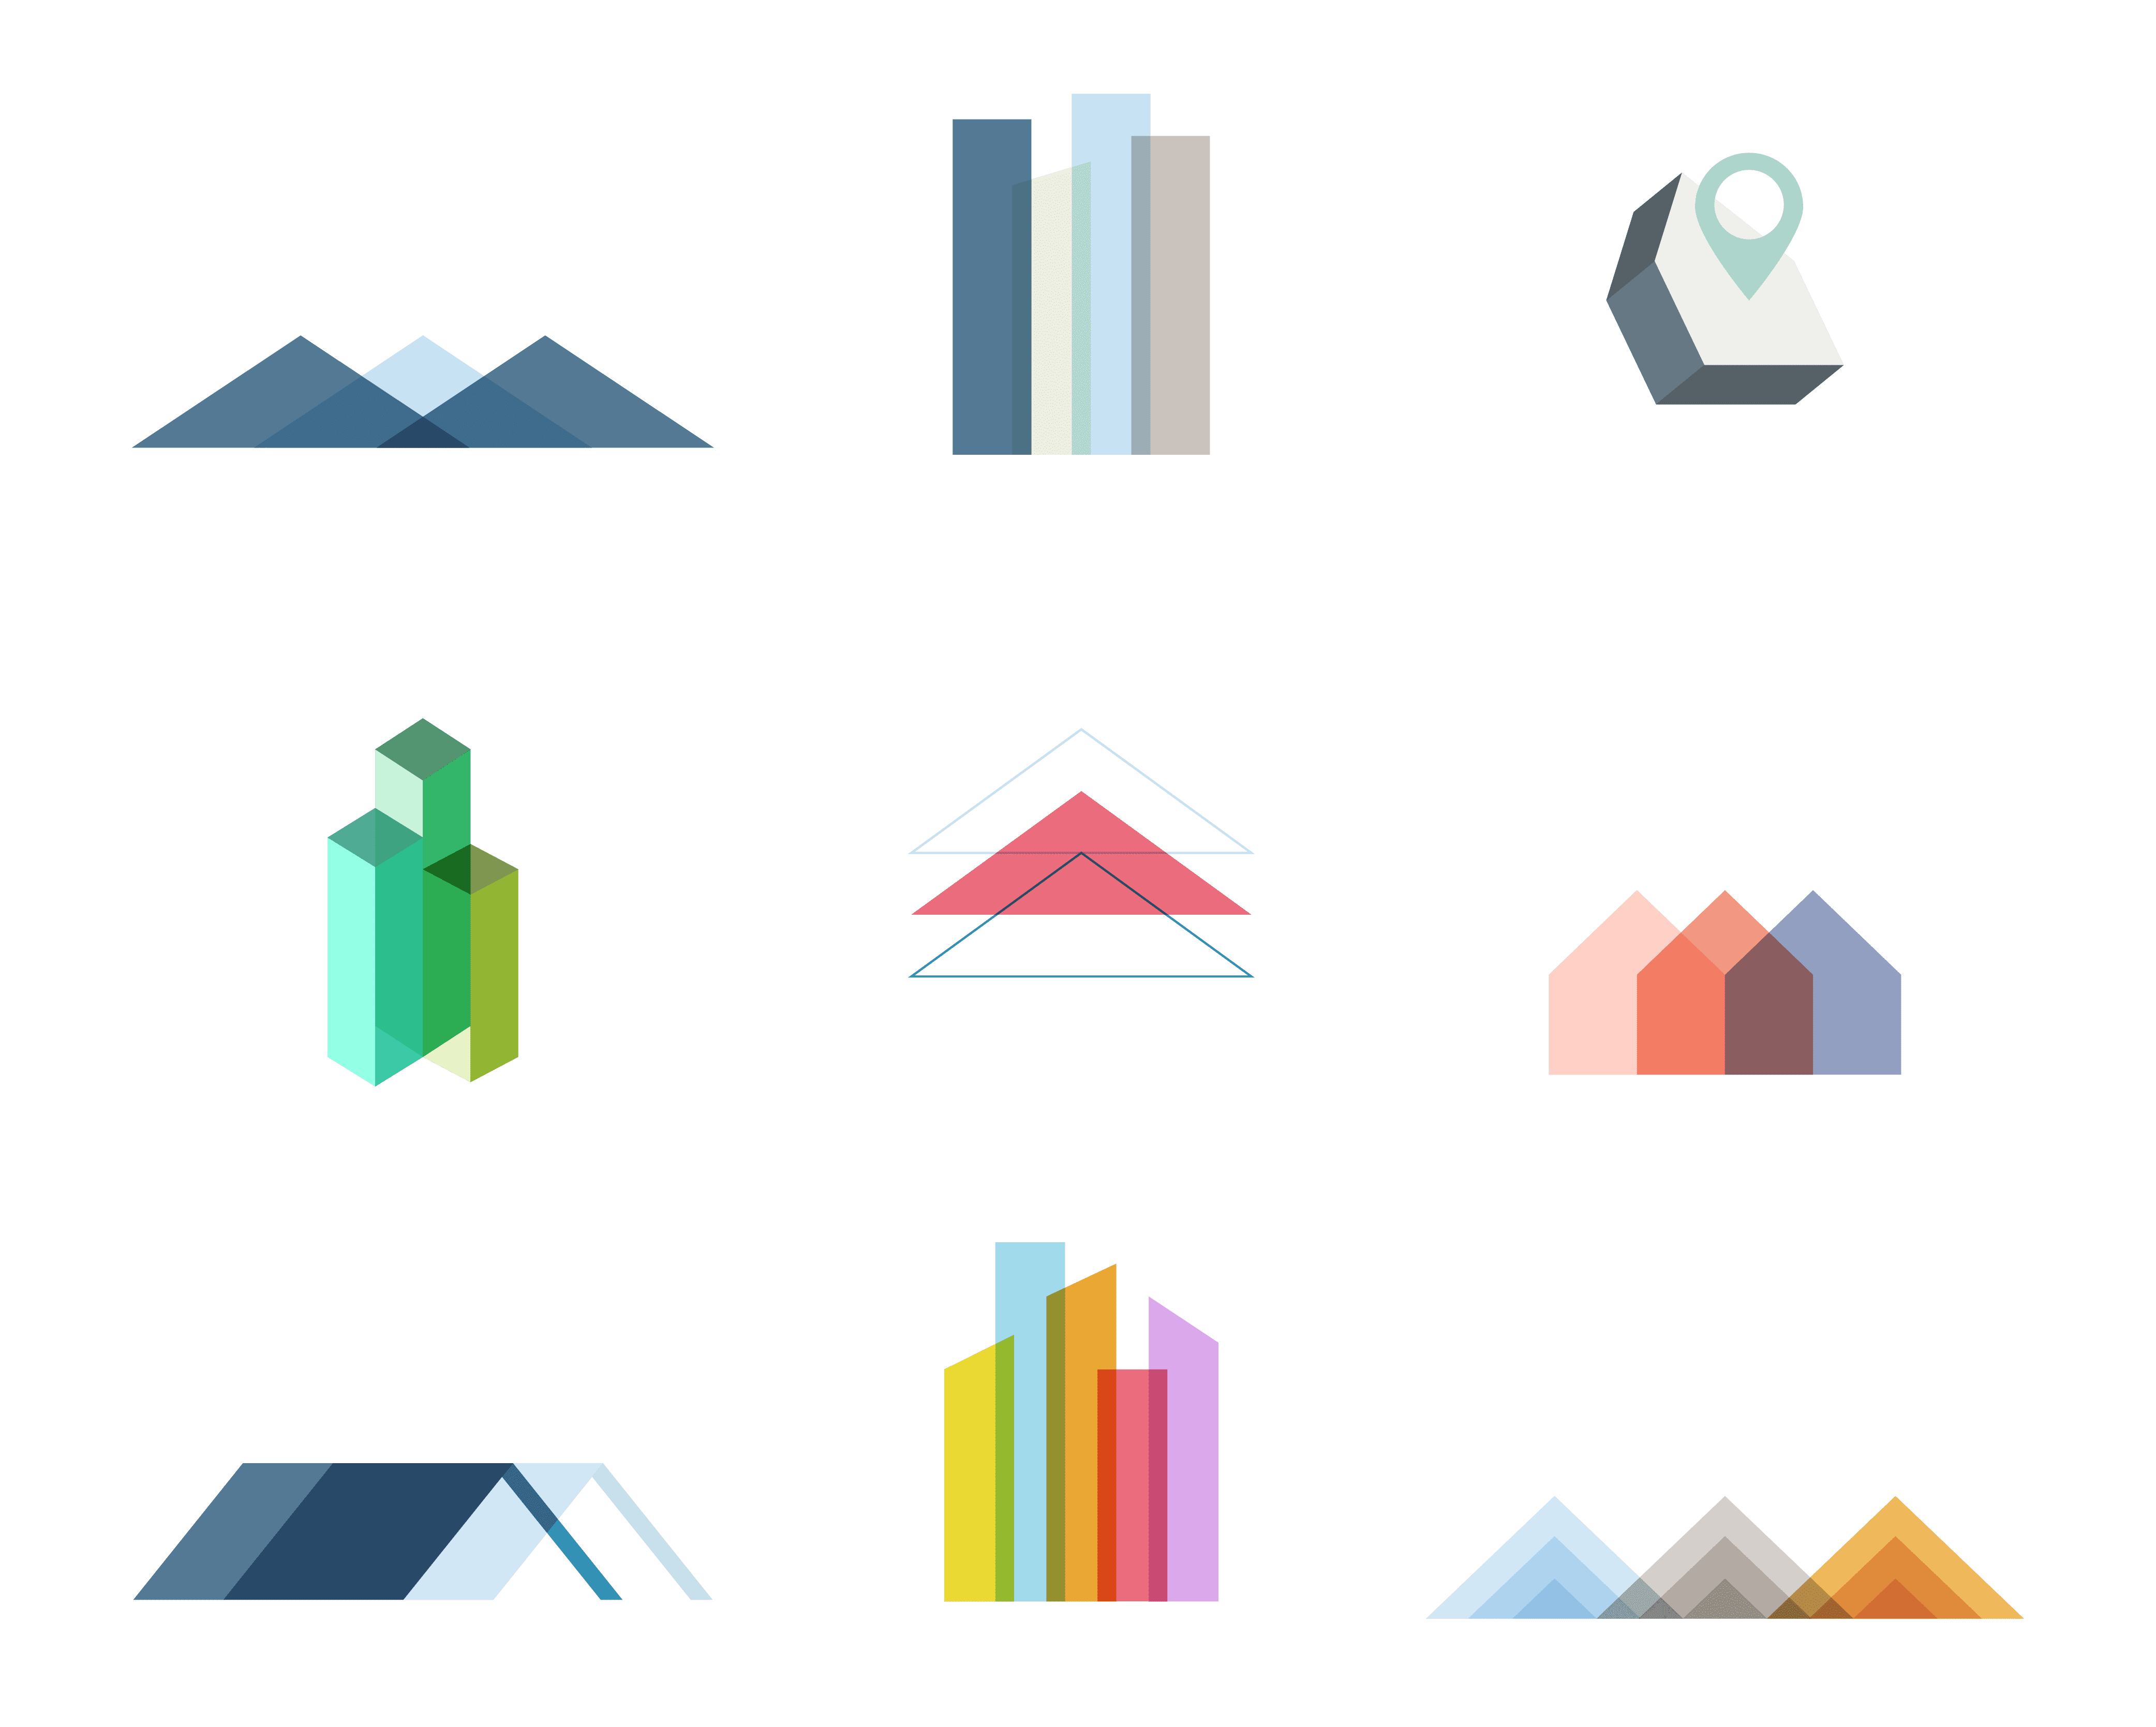 abstract architecture logo symbols